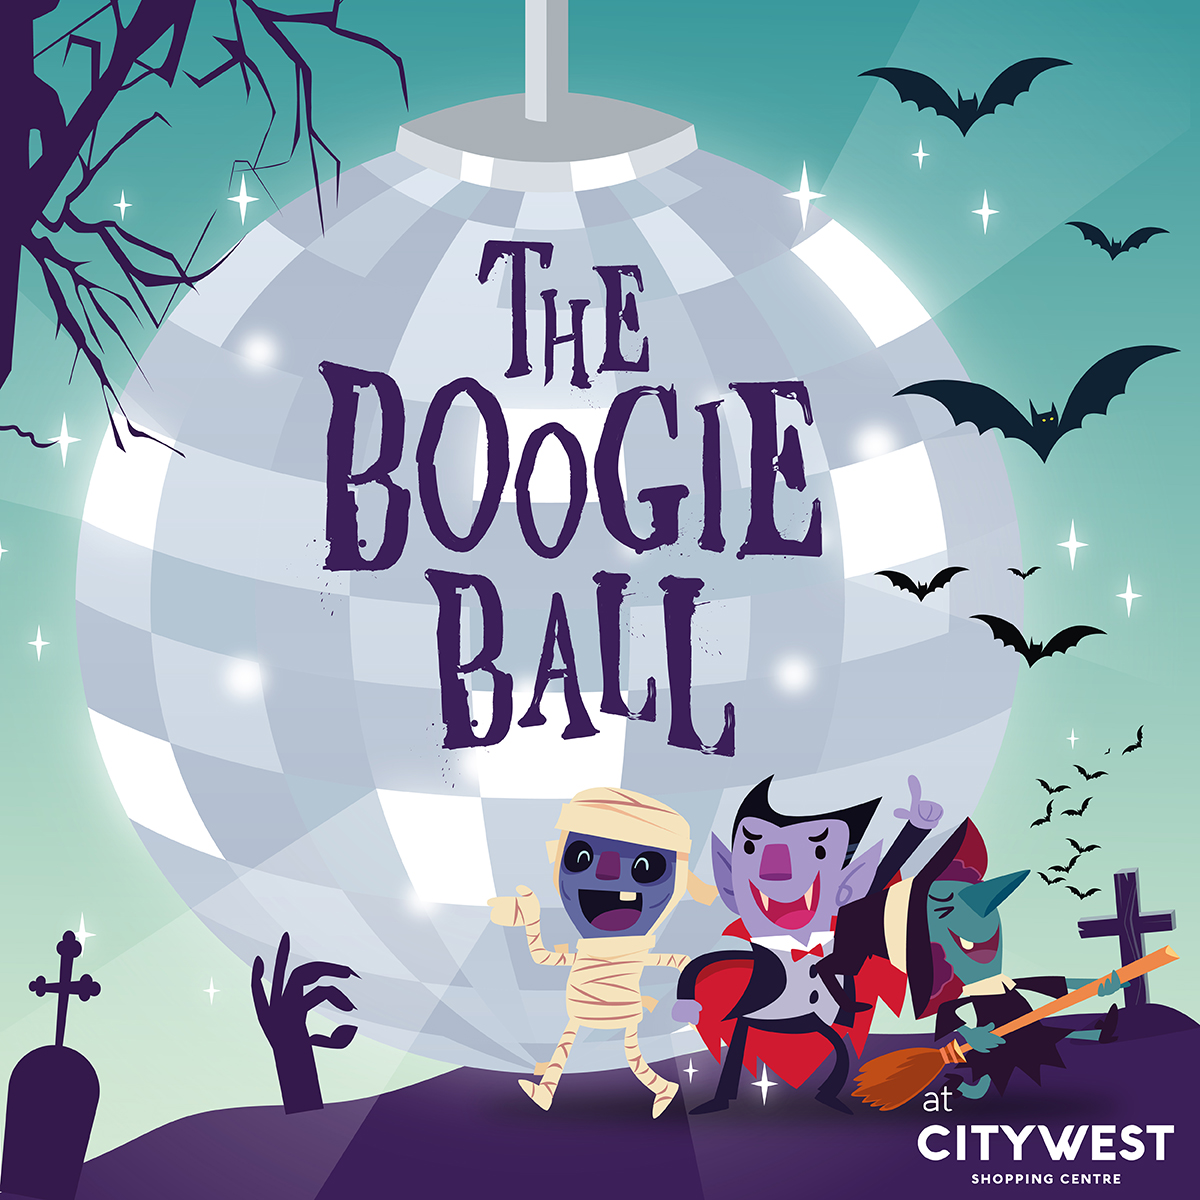 CityWest's Halloween Boogie Ball!